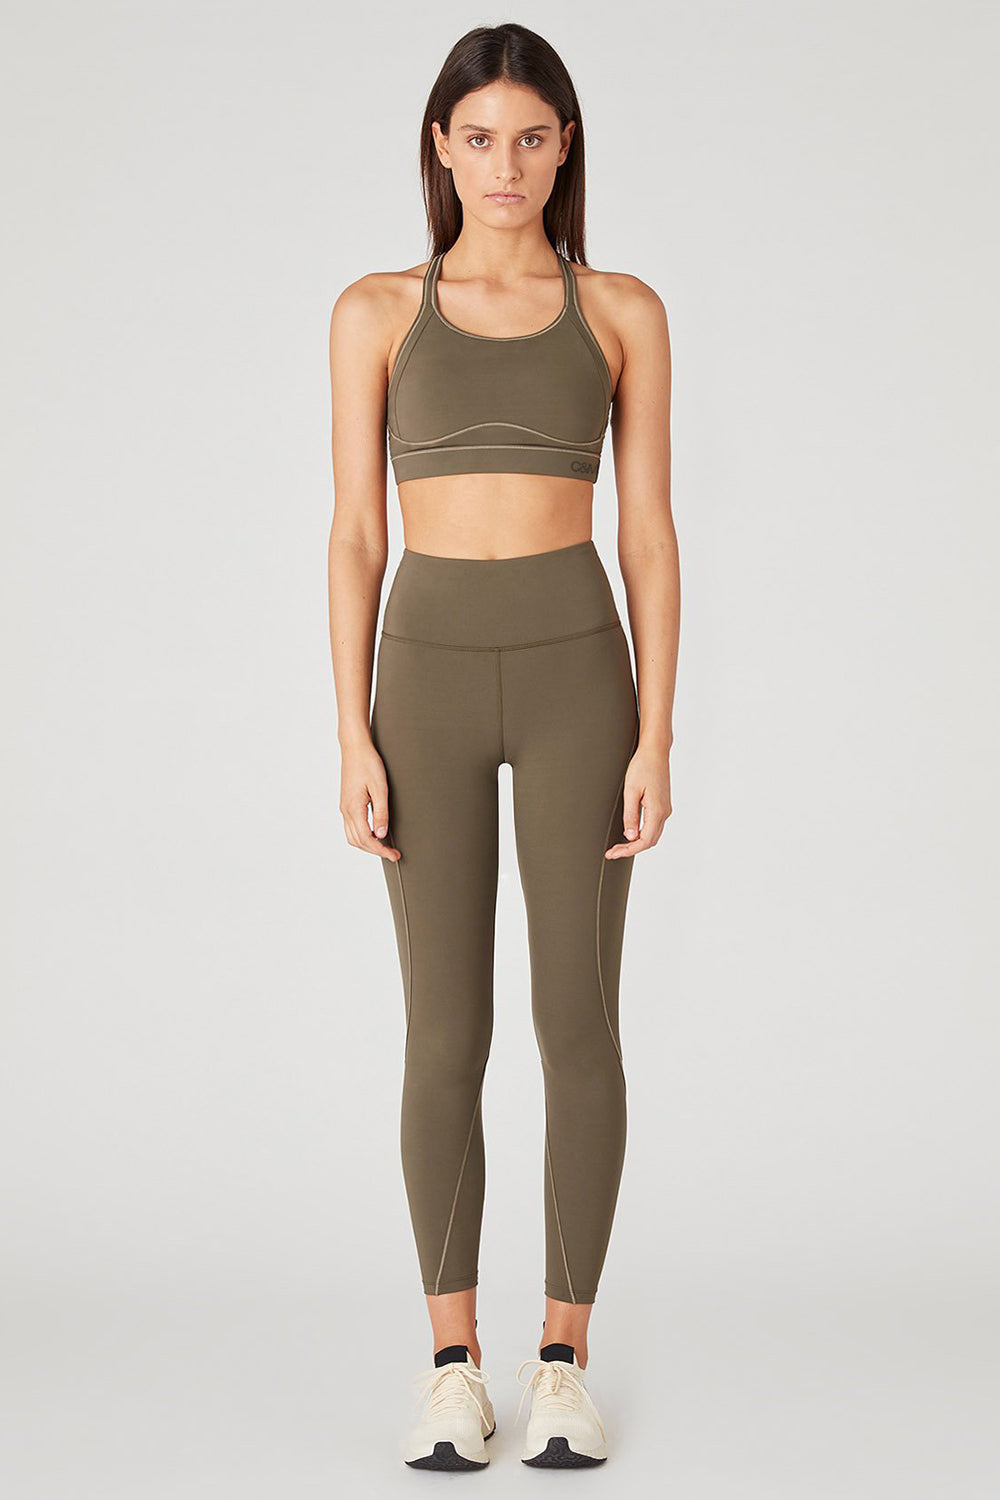 Camilla And Marc / Kennedy Legging / Khaki